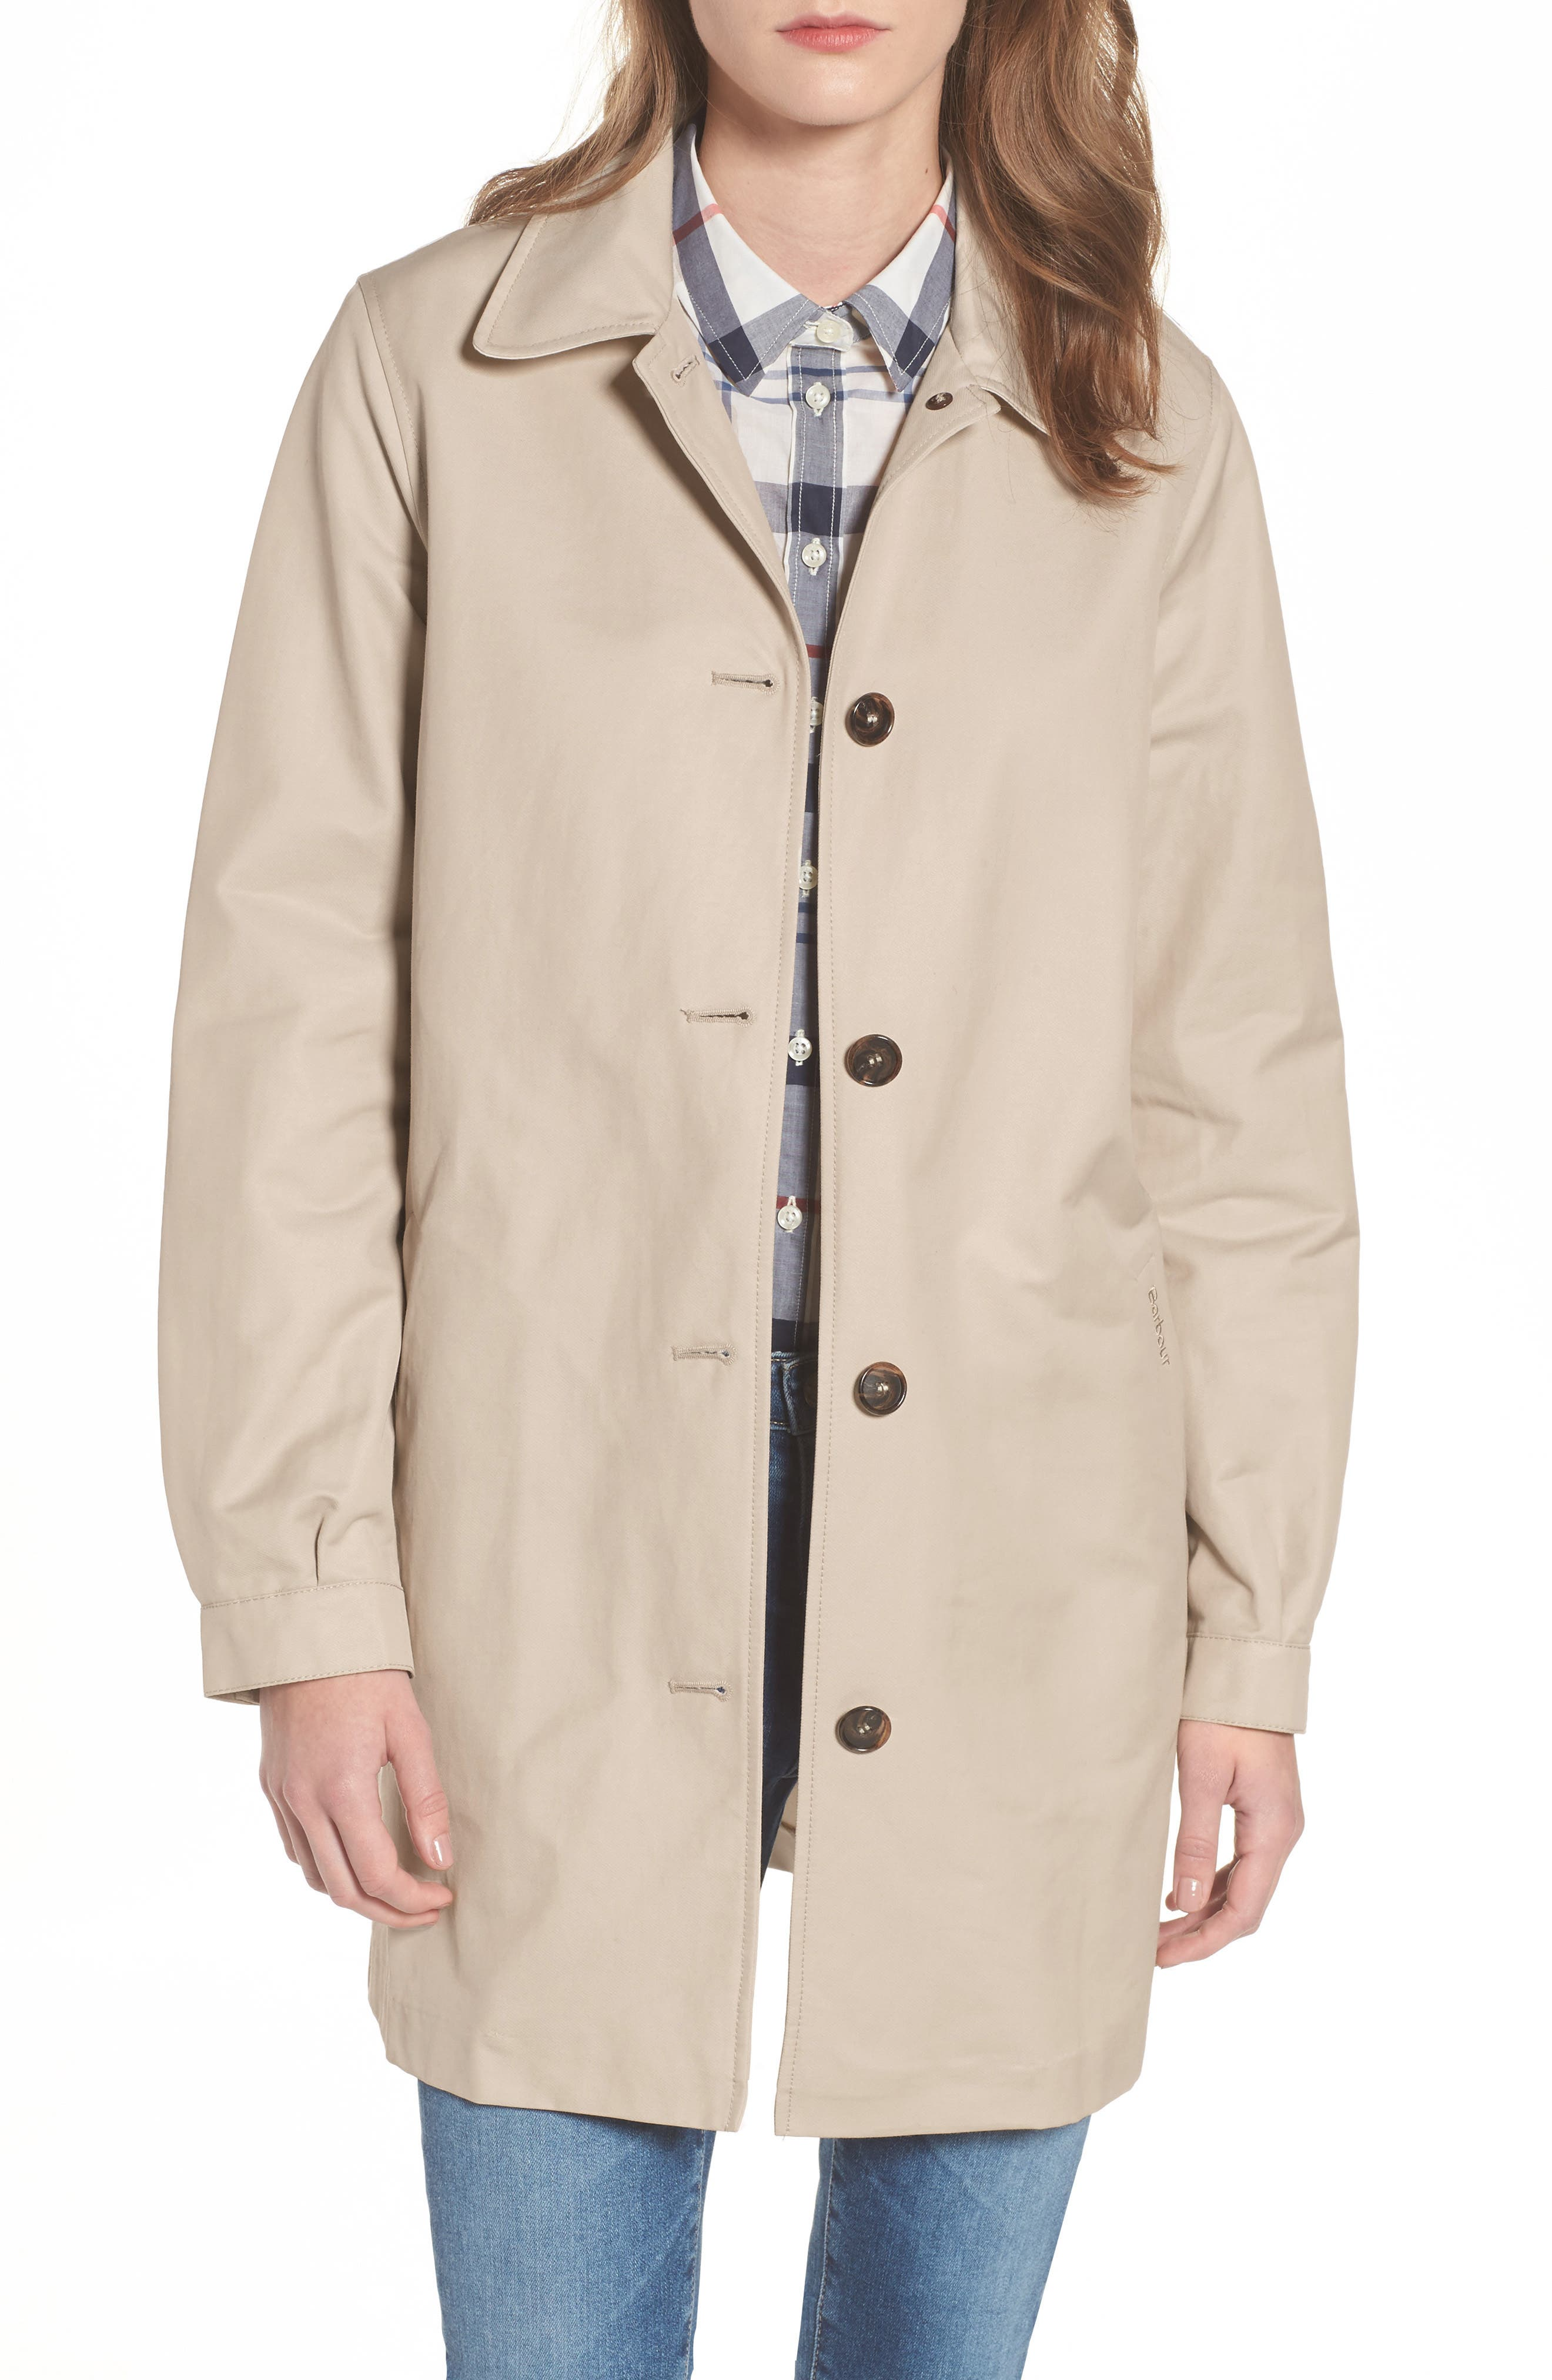 Yewdale Jacket,                         Main,                         color,